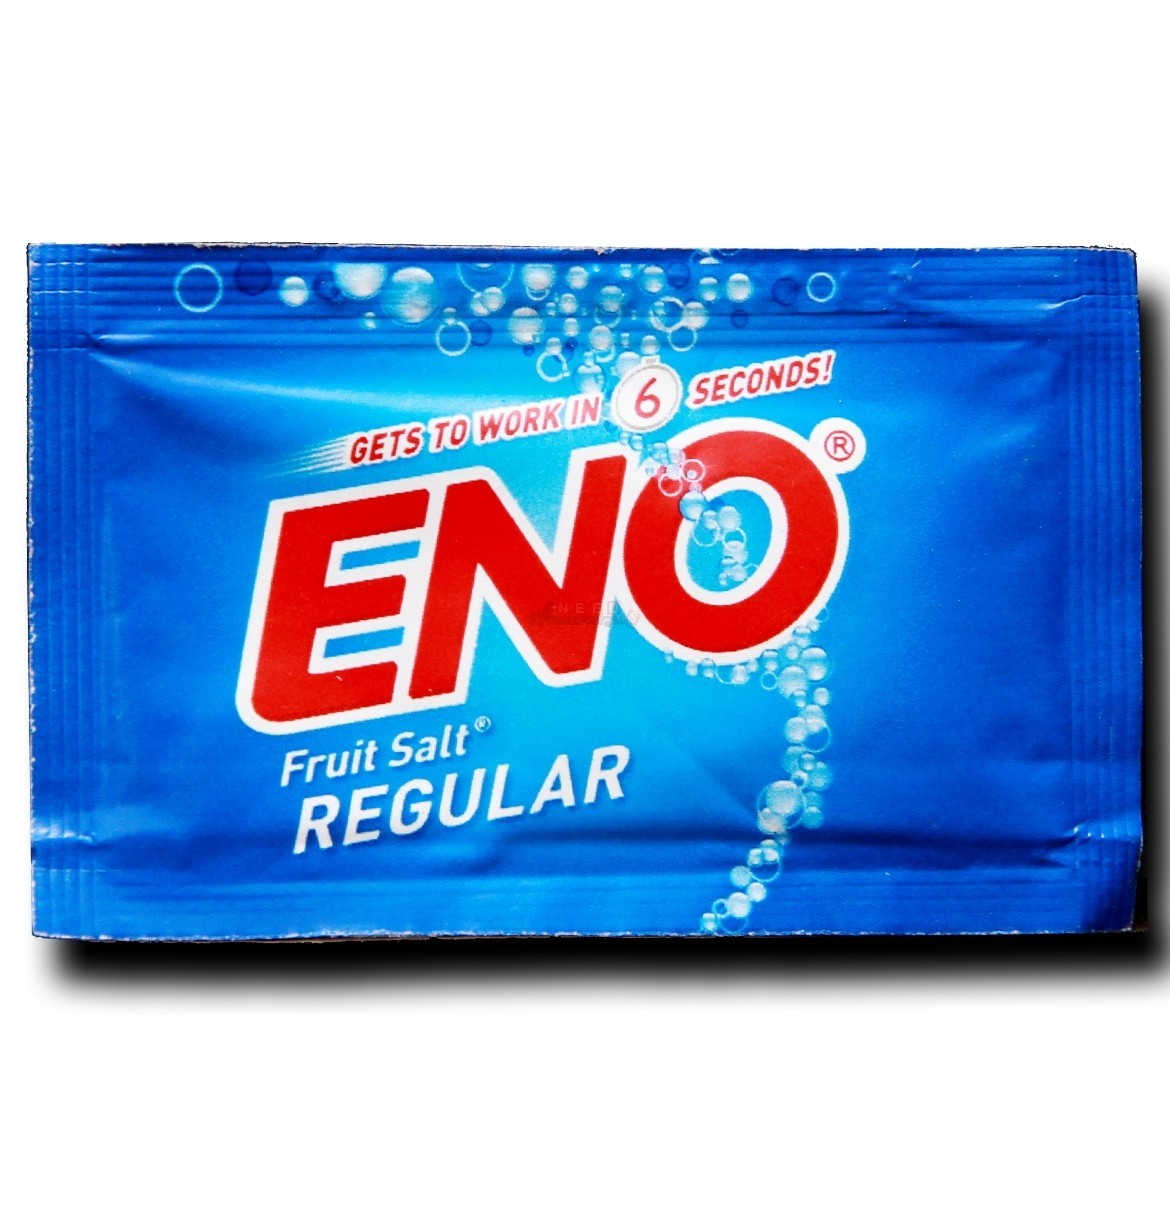 ENO REGULAR SACHET - 5 GM